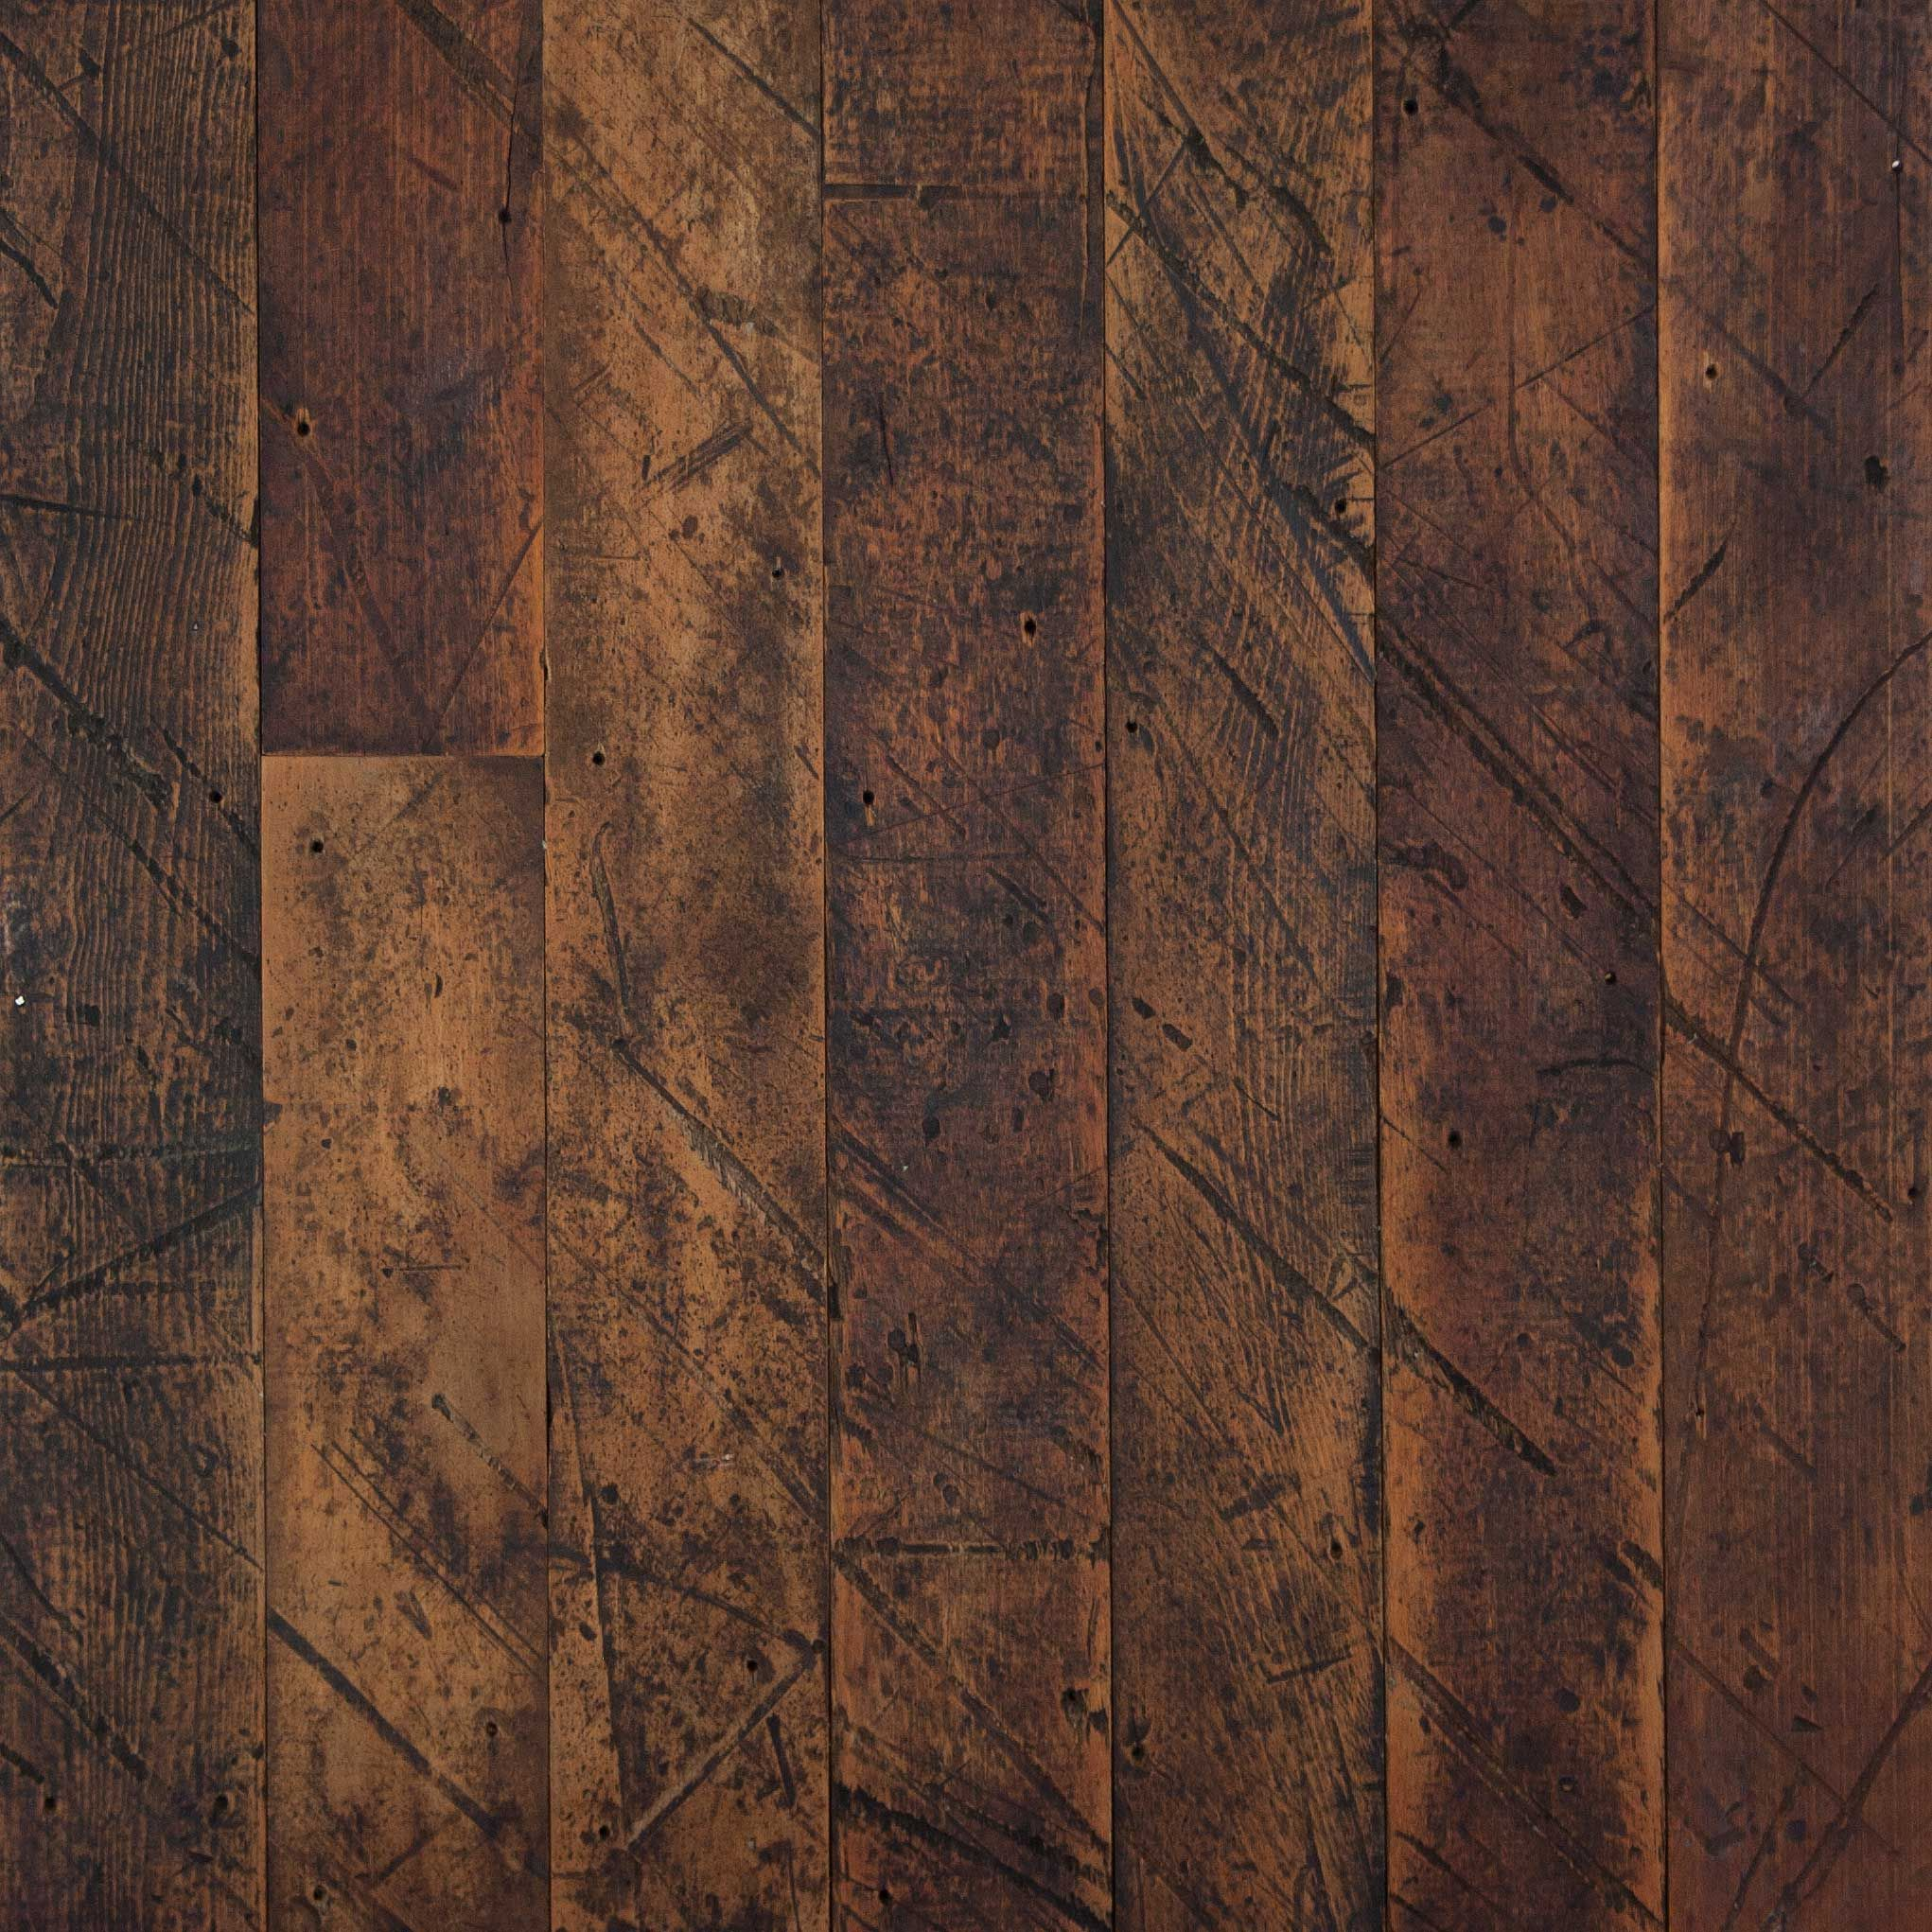 Antique Hardwood Flooring antique resawn oak hardwood flooring traditional hall Longleaf Lumber Reclaimed Factory Maple Flooring